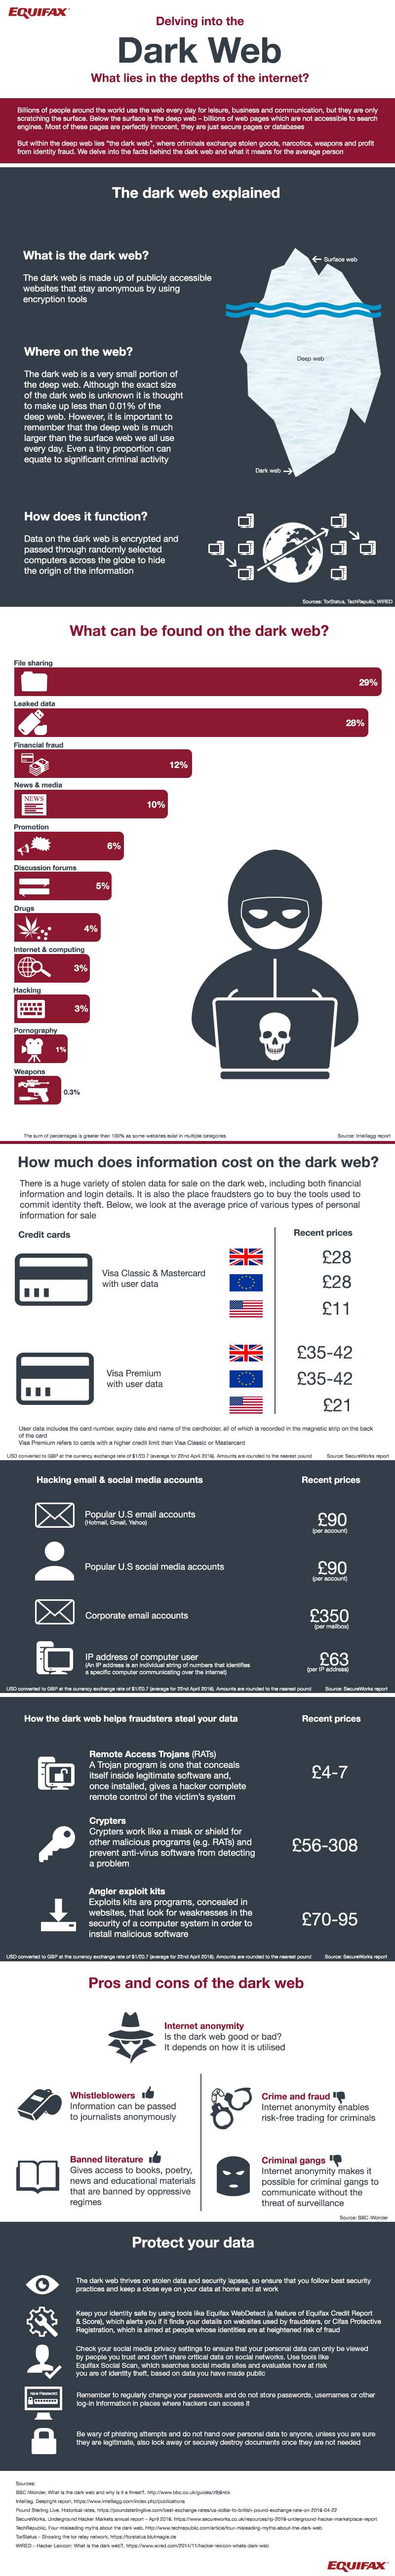 Equifax Has Made Angraphic That May Be Useful To Readers To Gain Some  Knowledge About Dark Web And How It Operates